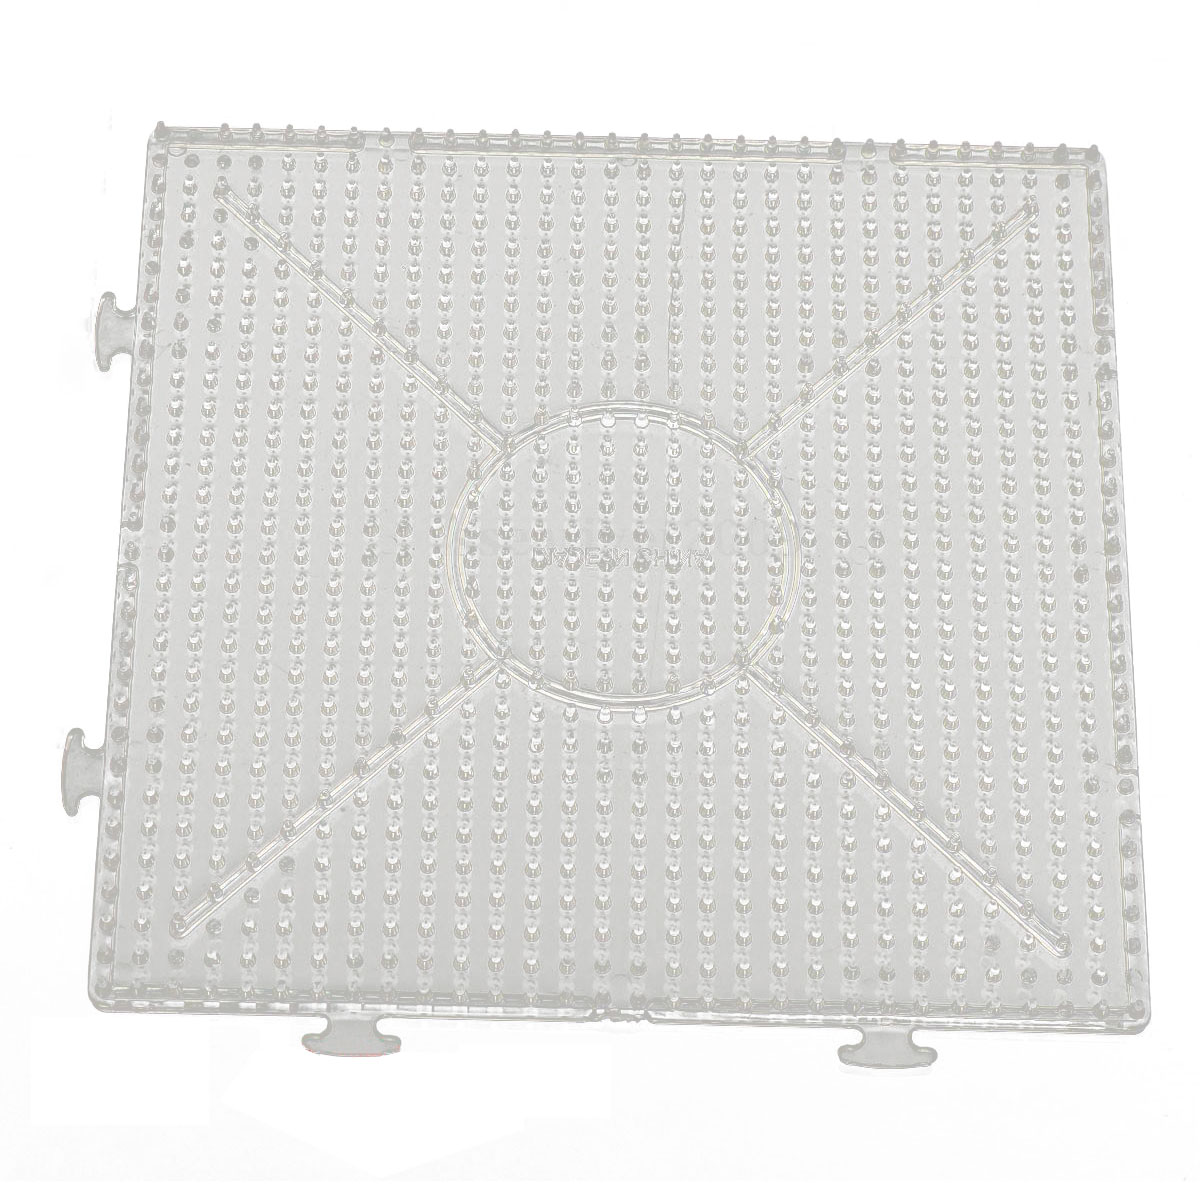 4pcs ABC Clear 145x145mm Square Large Pegboards Board for Hama Fuse Perler Bead